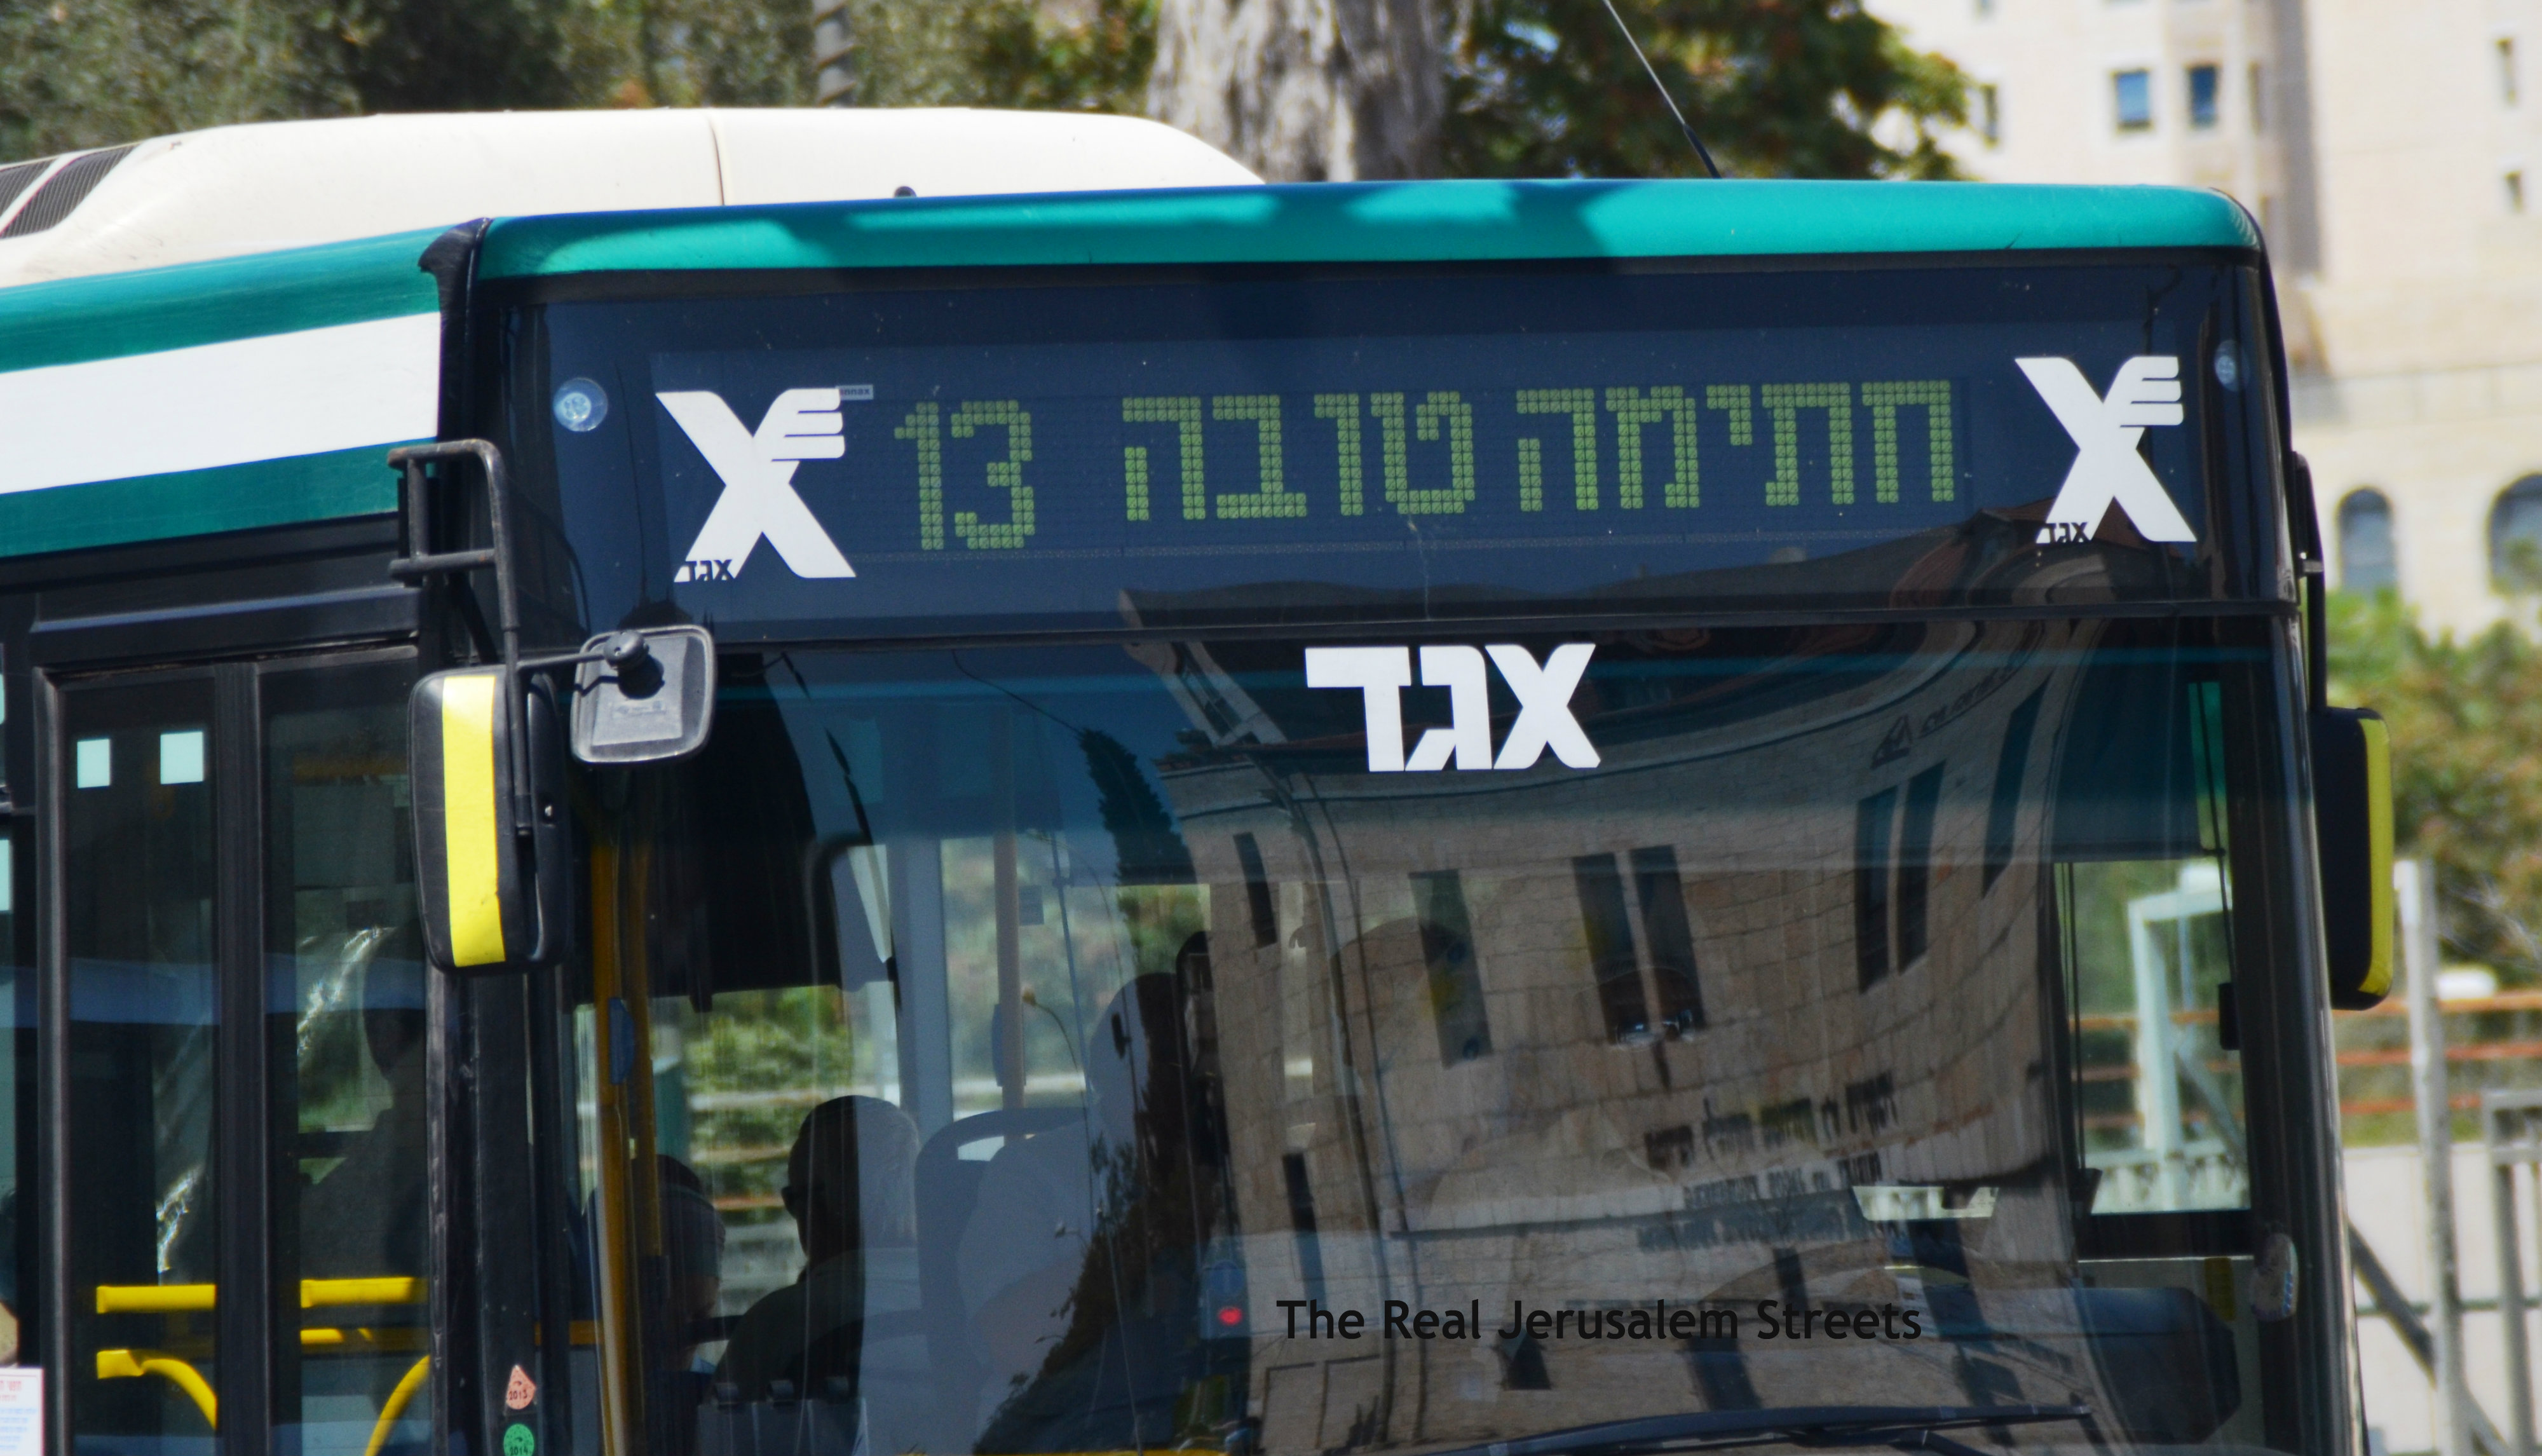 Israeli bus with Yom Kippur holiday greeting